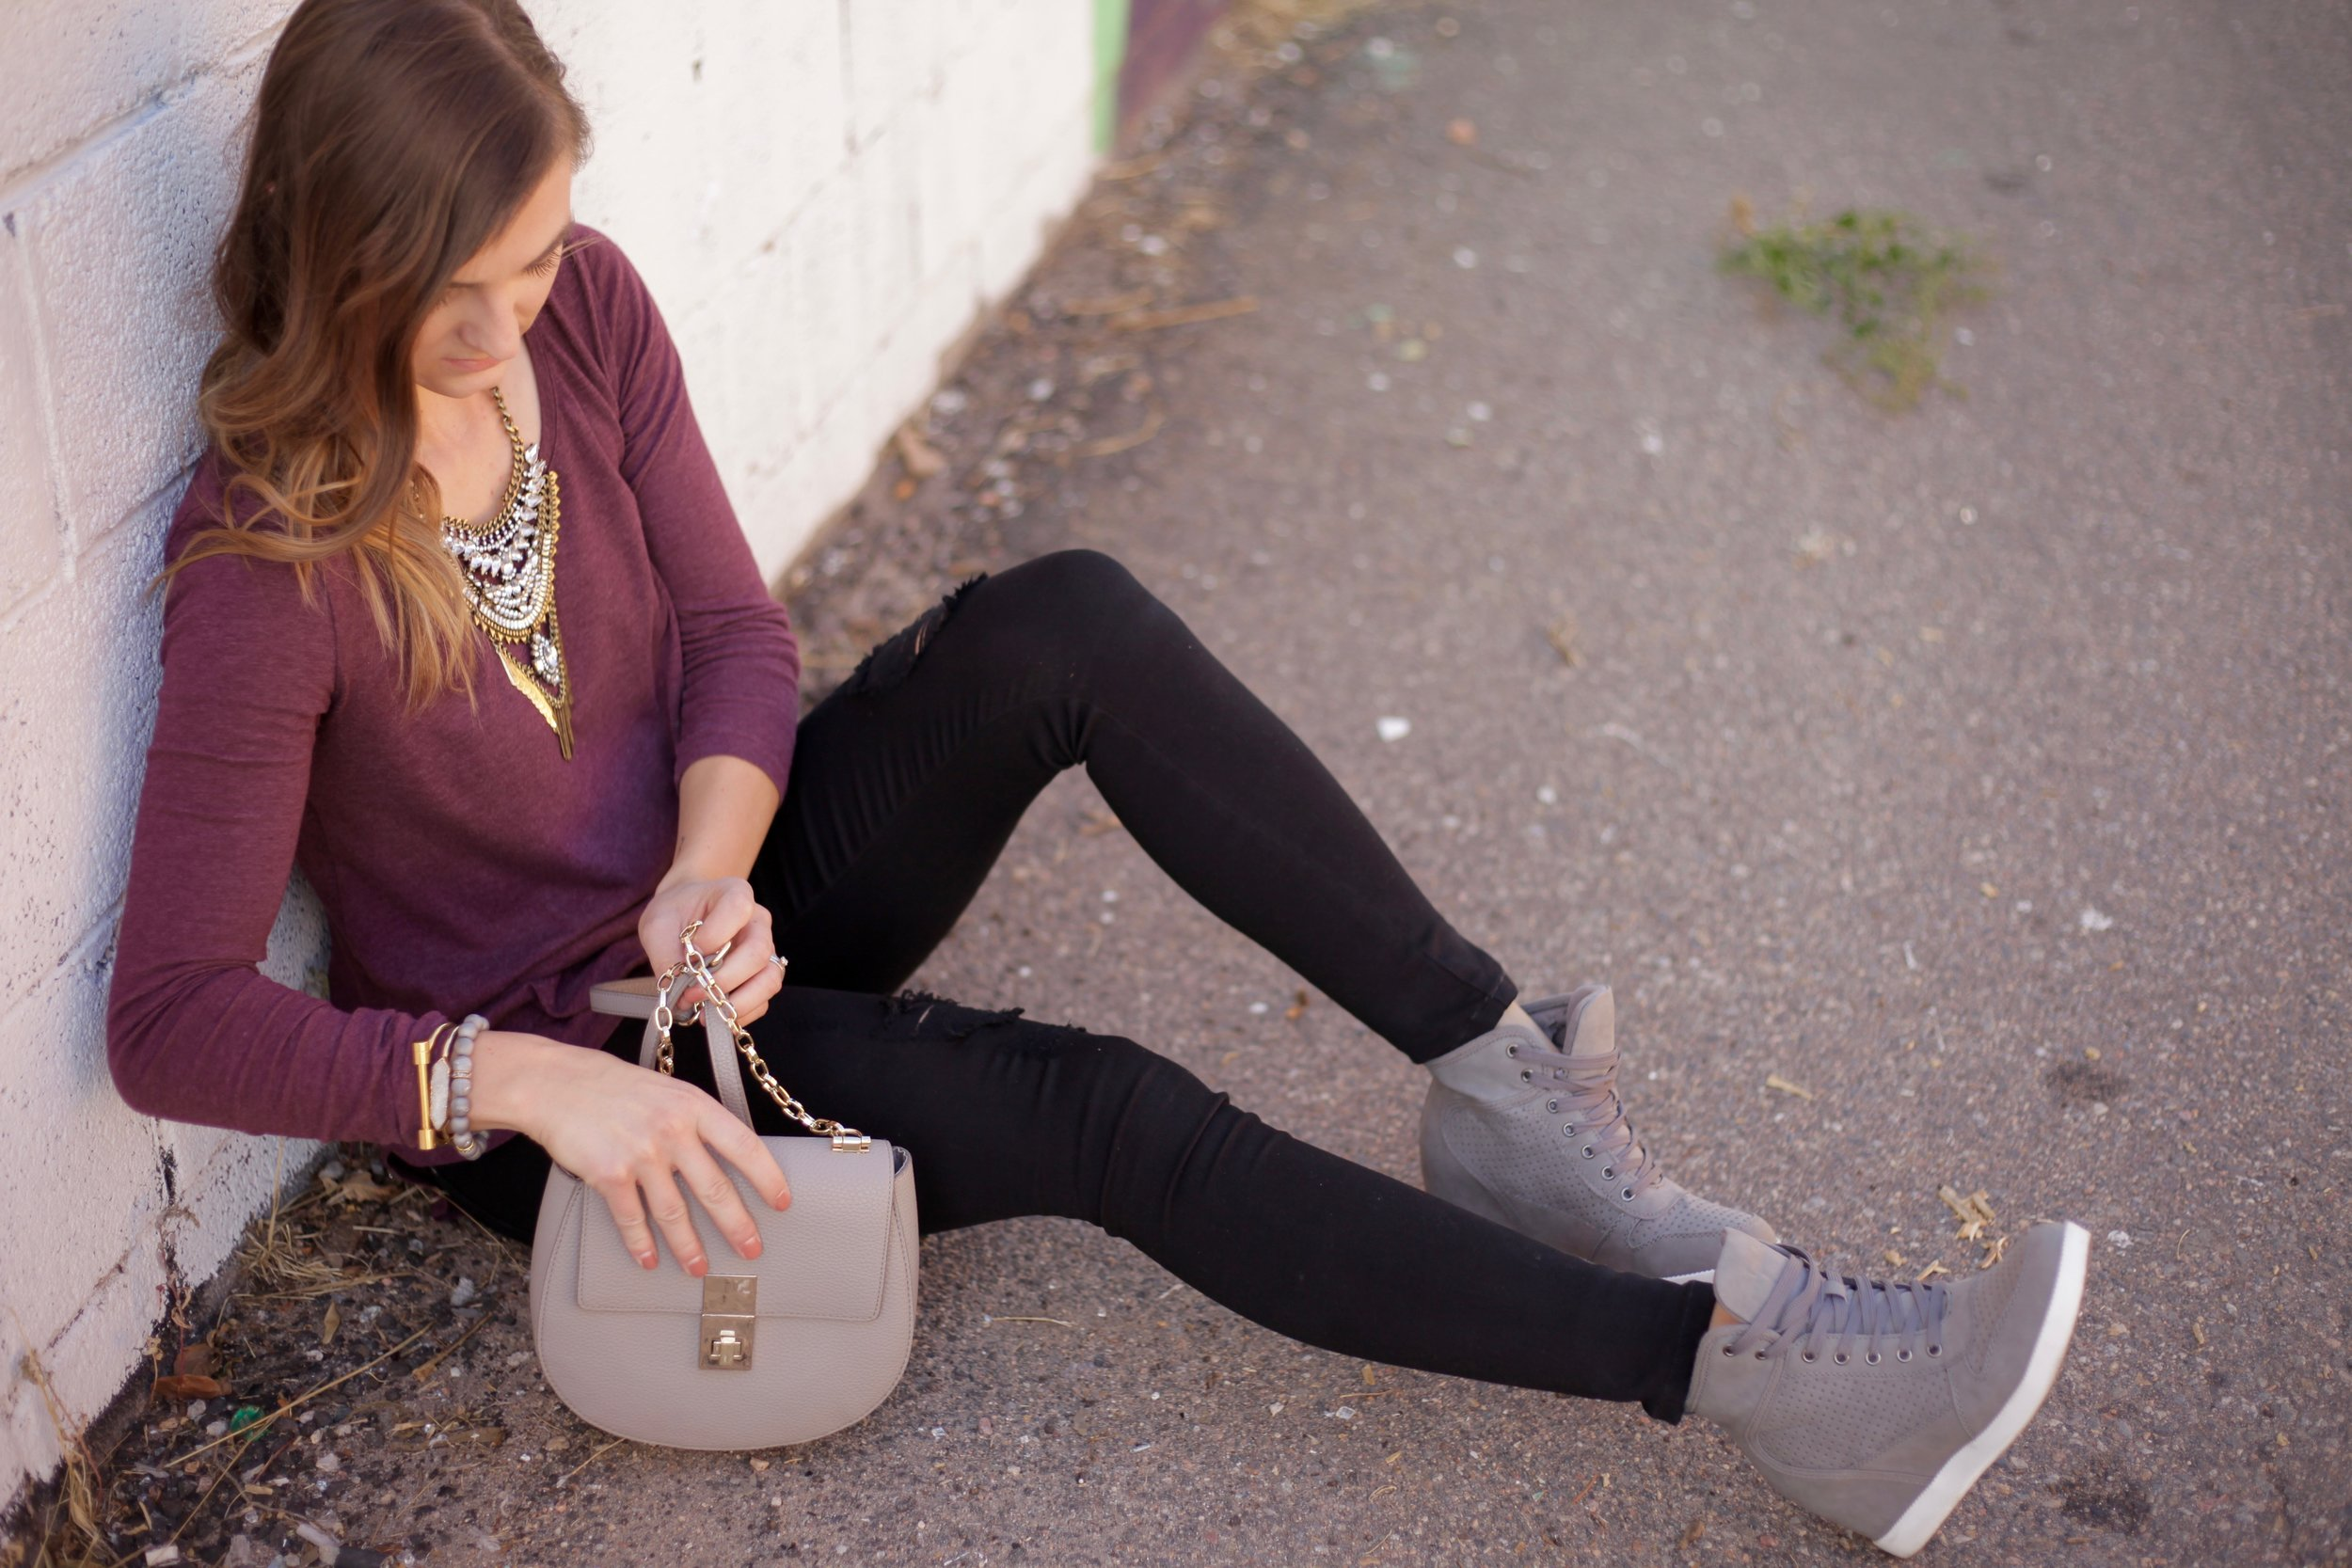 Statement Necklace  similar ,  HERE  ,  HERE  and  HERE // Wedge sneakers  similar , and  HERE  // Bag  similar  //  Black Denim , similar  HERE  and  HERE  //  BP Top  //  Crystal Cuff  //  Bar Bracelet  //  Geode Bracelet